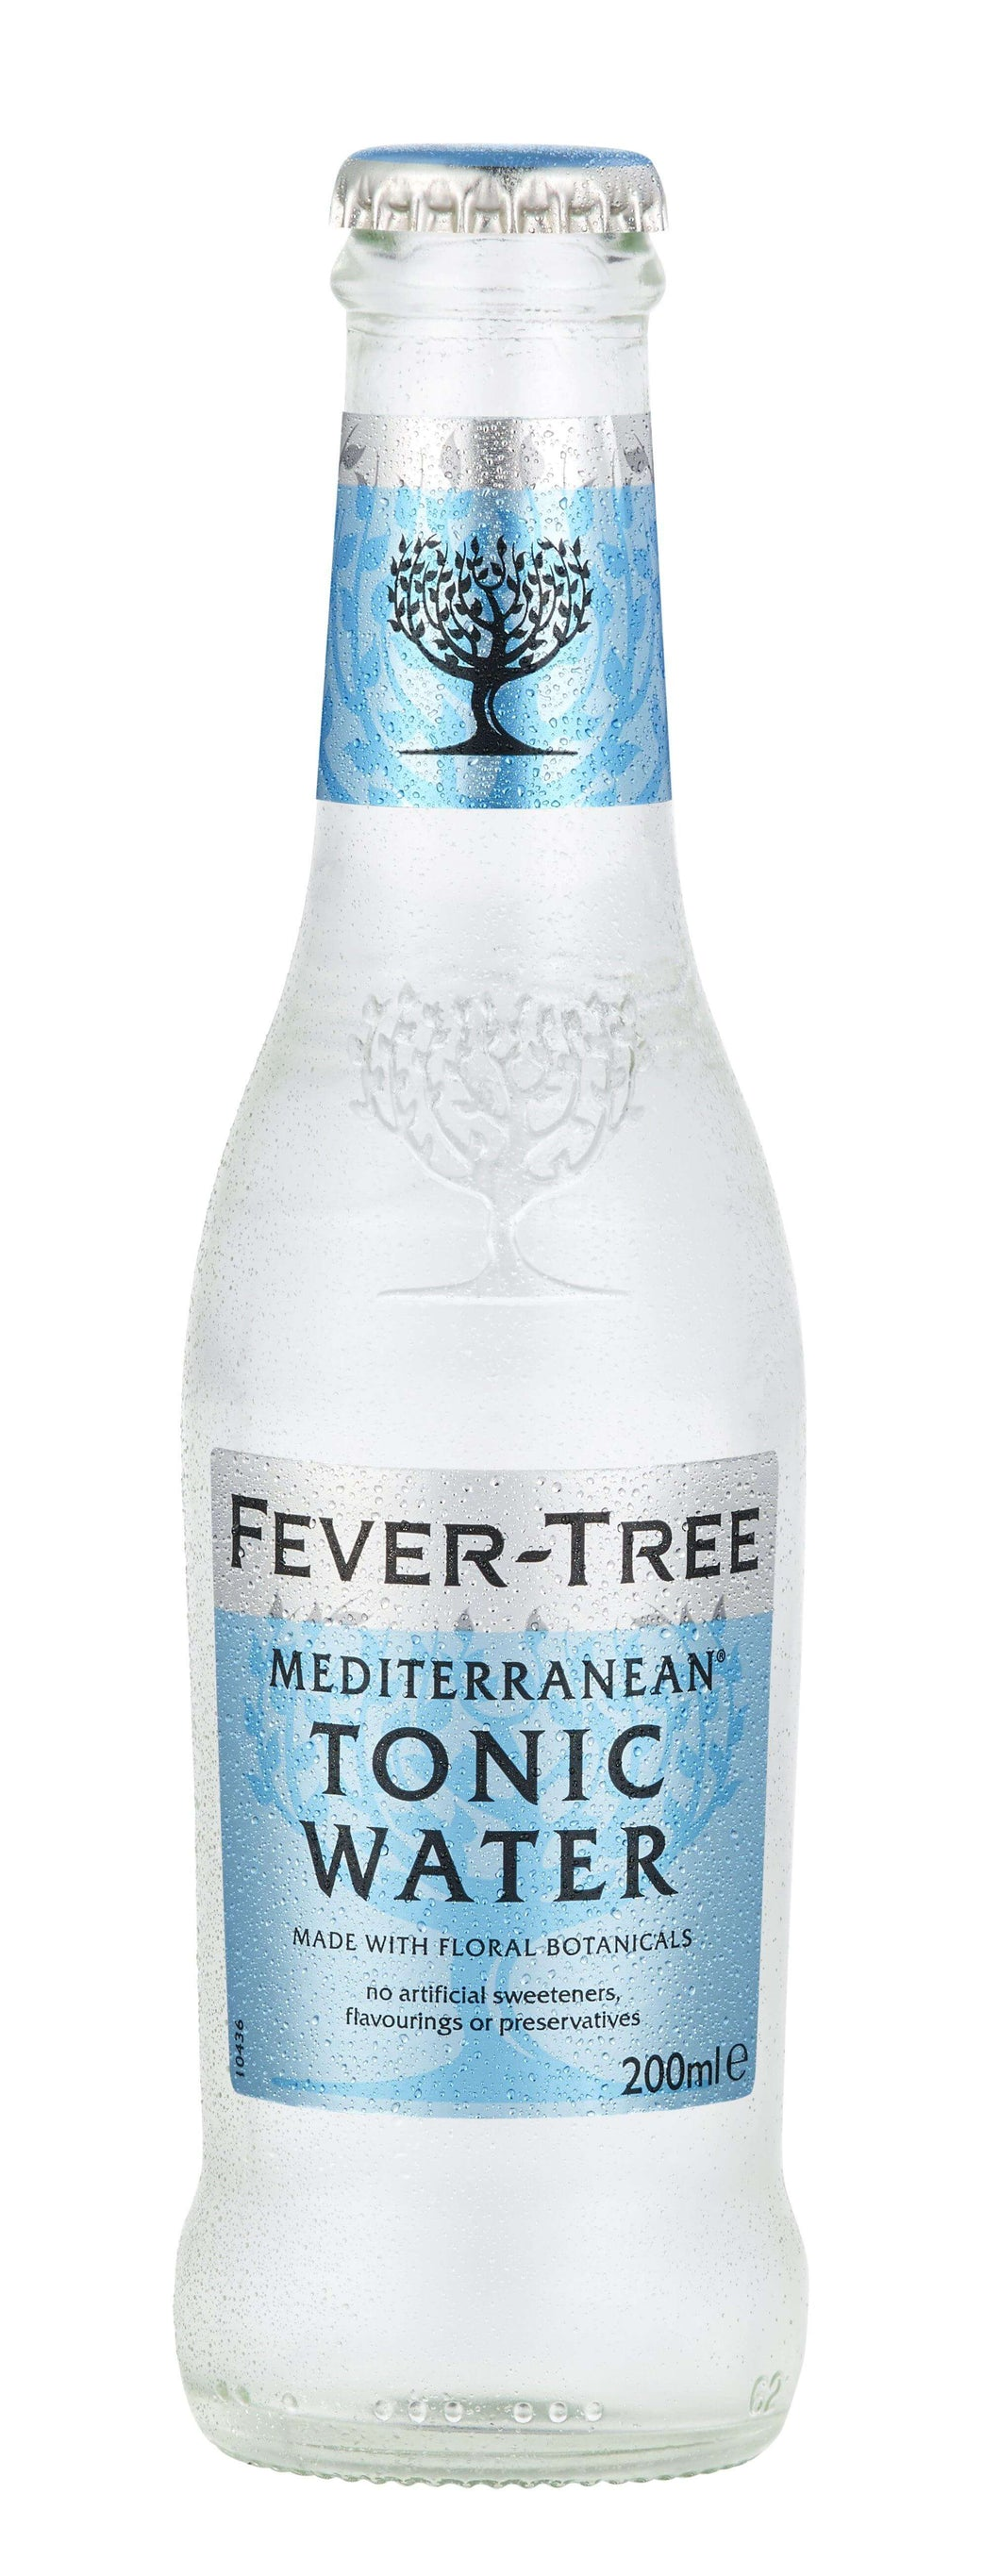 Fever-Tree Mediterranean Tonic